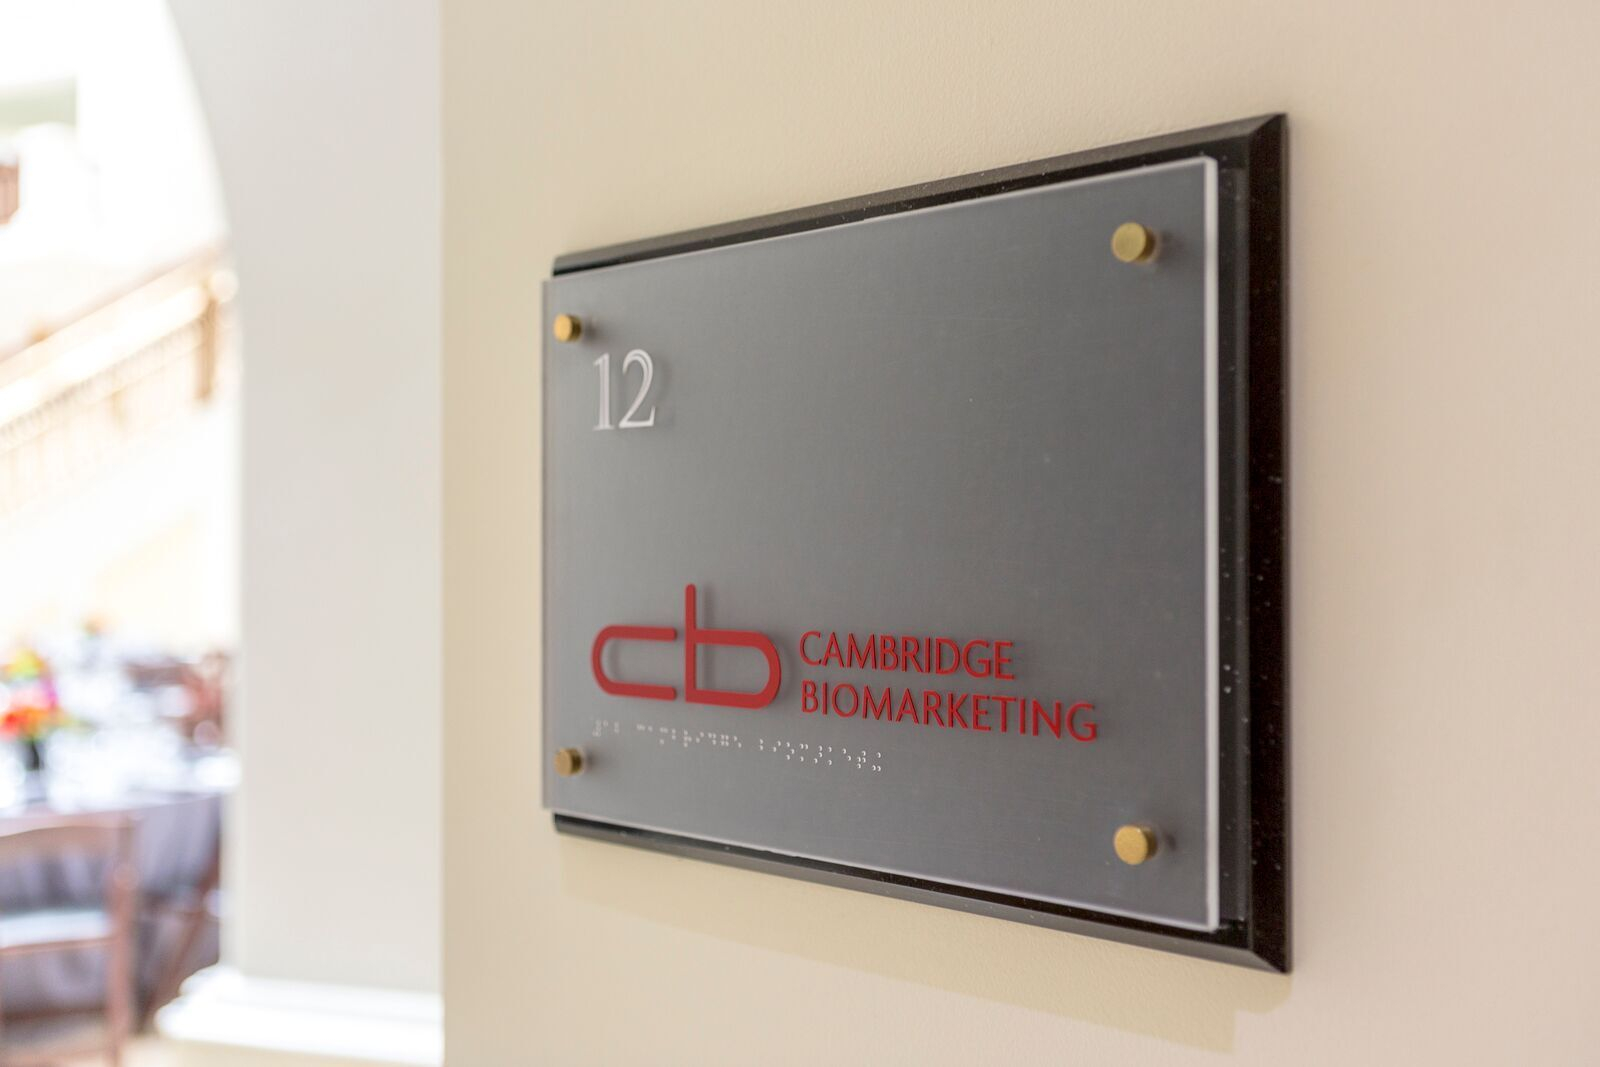 Cambridge BioMarketing's West Coast office, located at 300 Frank H Ogawa Plaza, Oakland, CA 94612. (Photo: Business Wire).